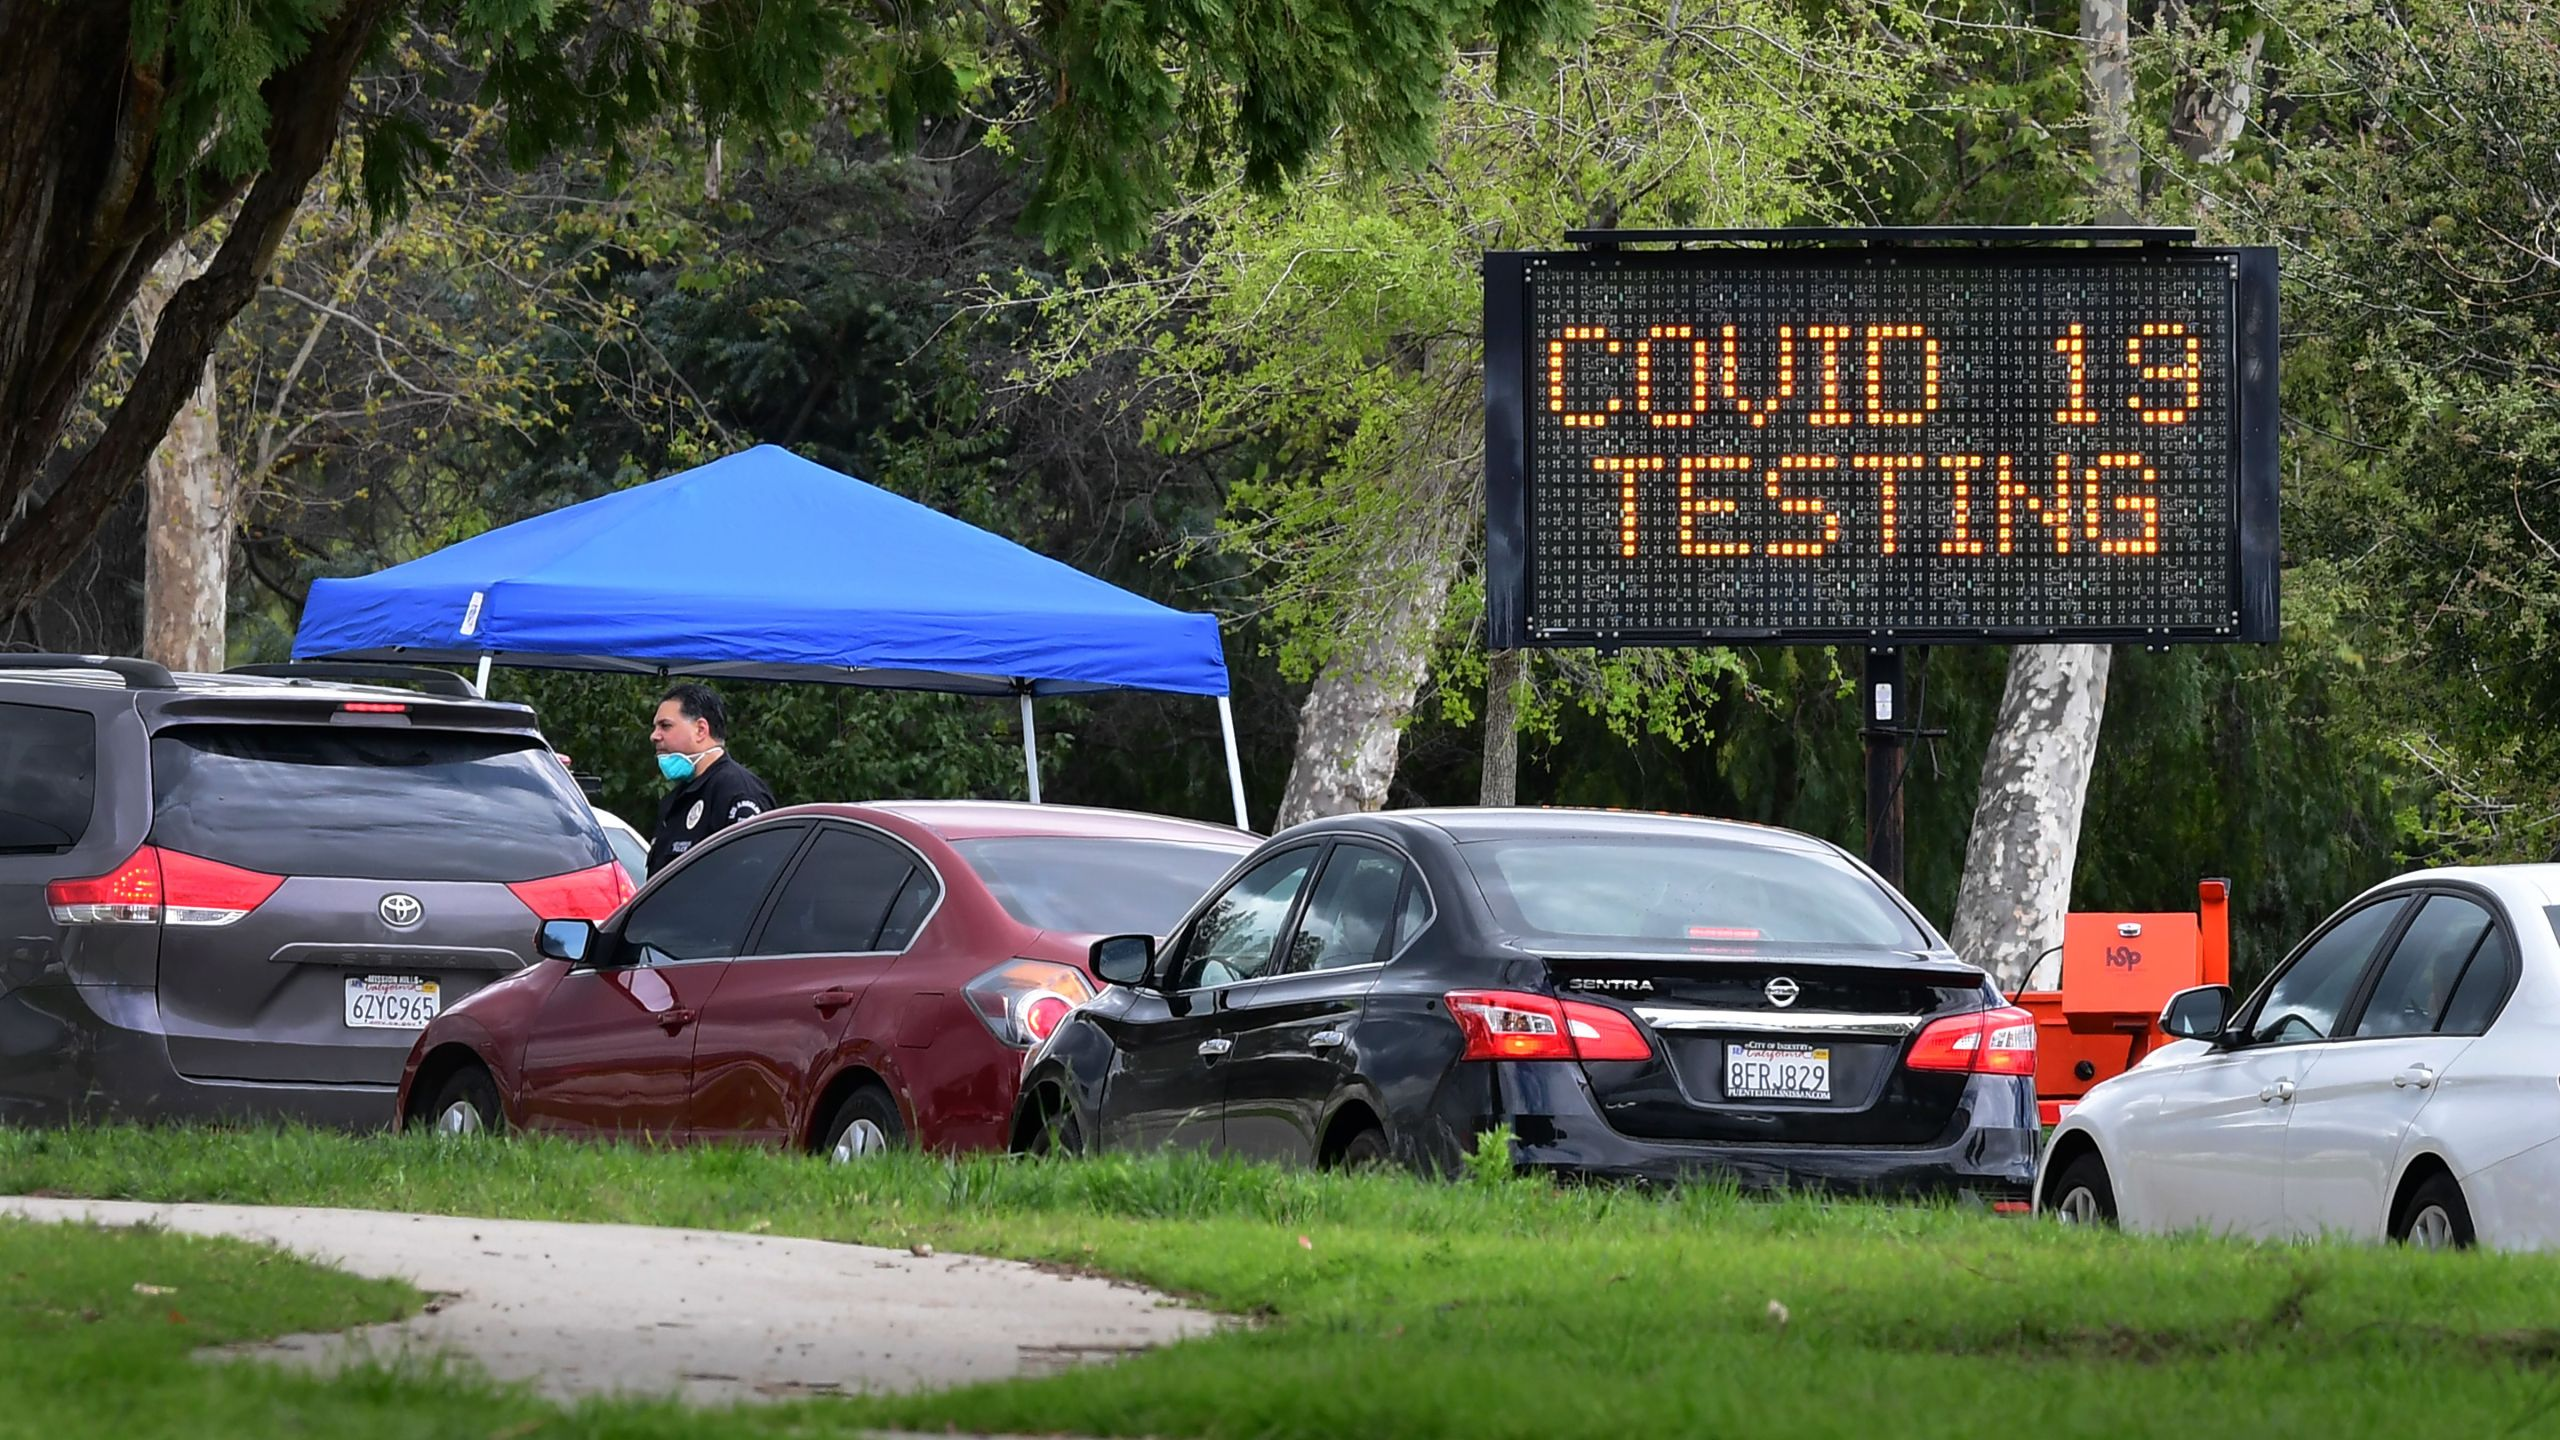 A police officer mans the entrance to a coronavirus testing center in Hansen Dam Park on March 25, 2020, in Pacoima, California. (FREDERIC J. BROWN/AFP via Getty Images)